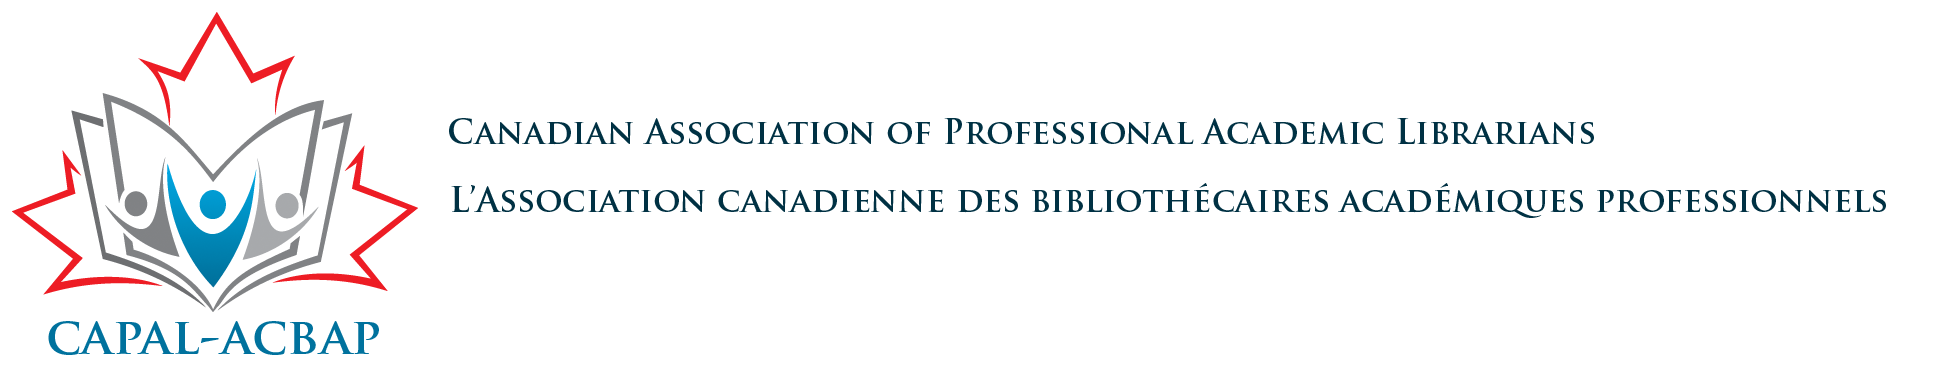 Canadian Association of Professional Academic Librarians